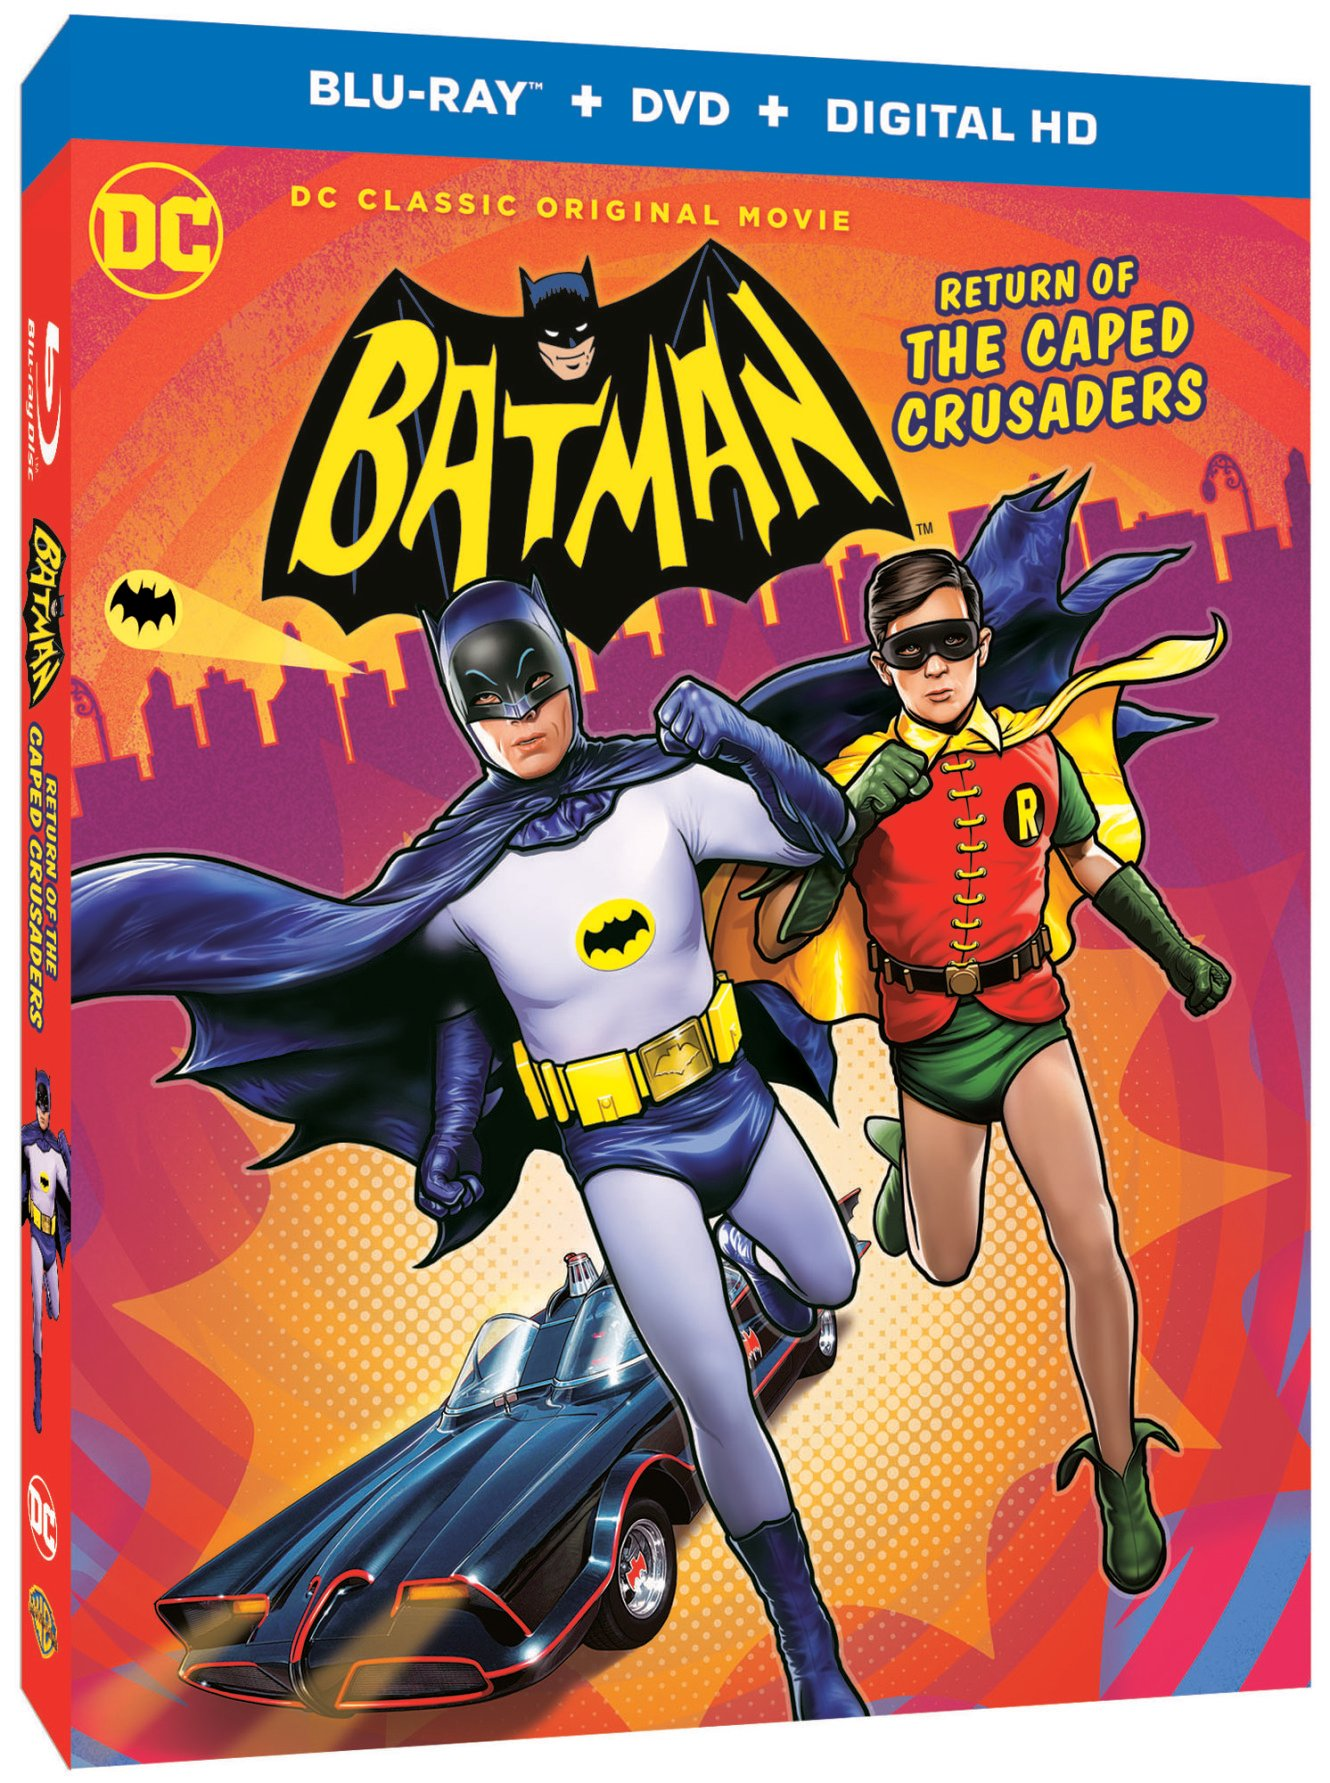 batman return of the caped crusaders box art